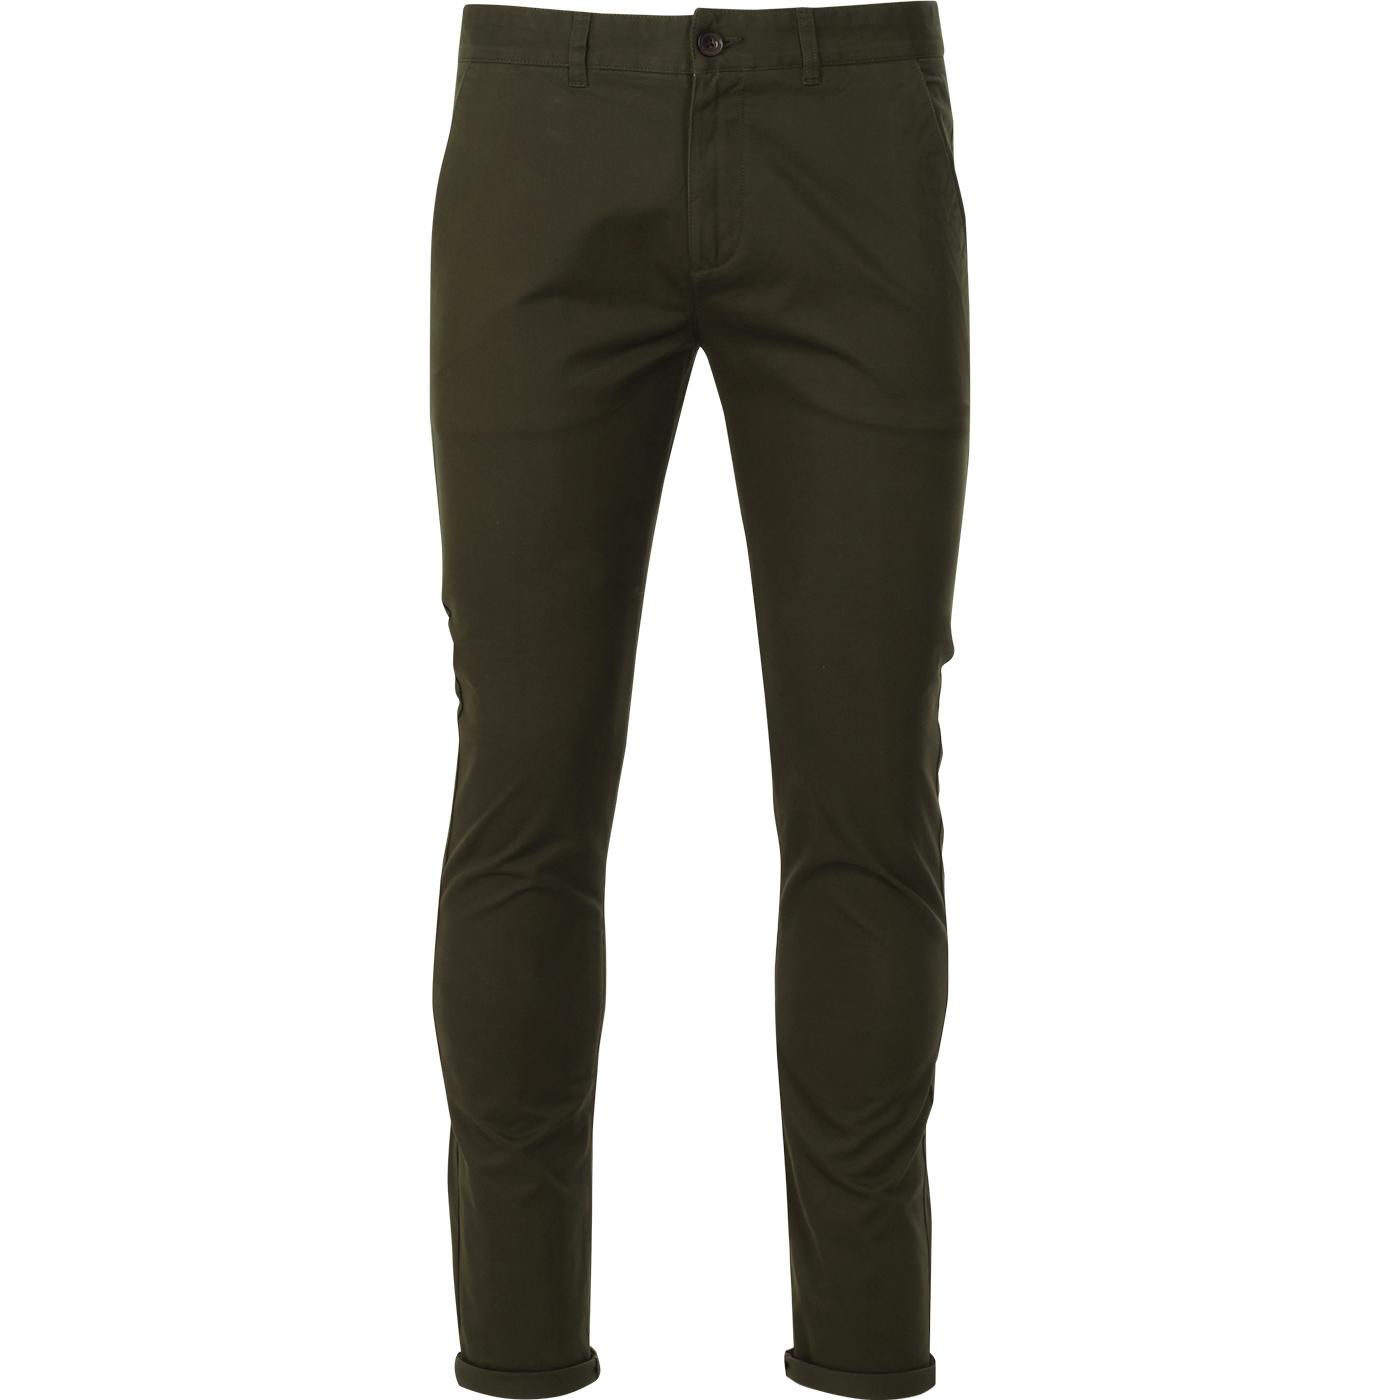 Drake FARAH Retro Mod Twill Chino Trousers (Green)